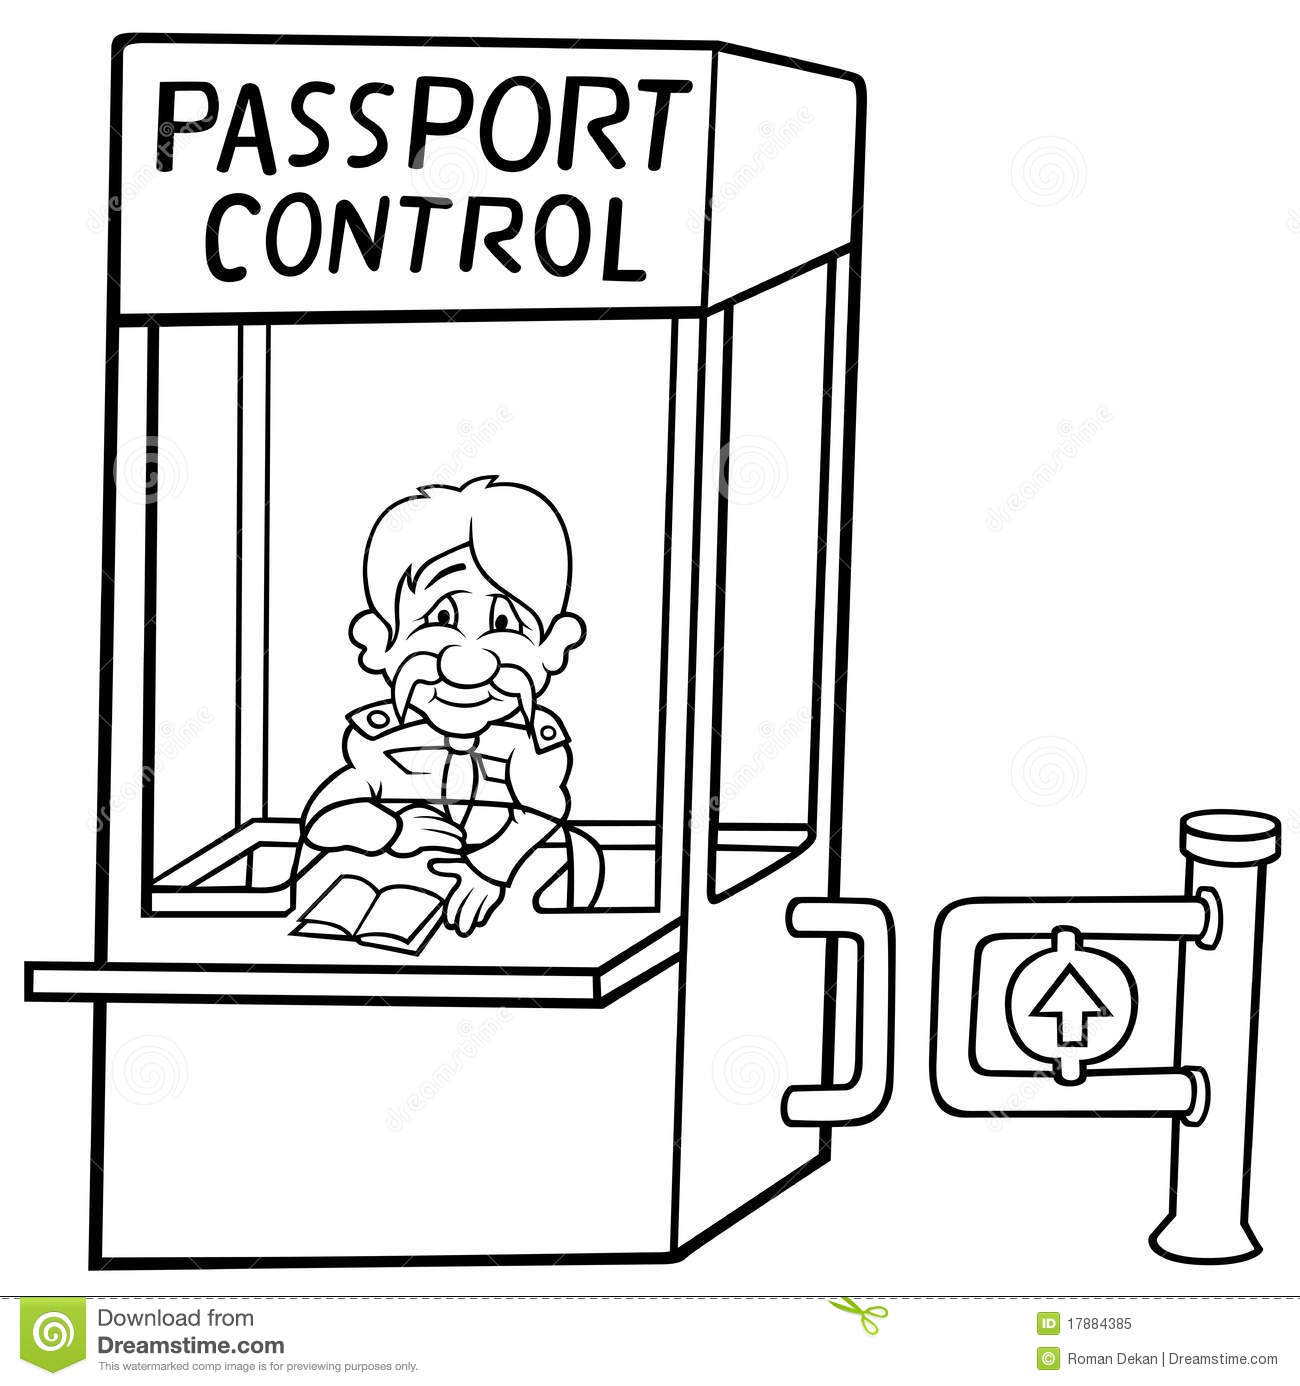 passport control royalty free stock photo image 17884385